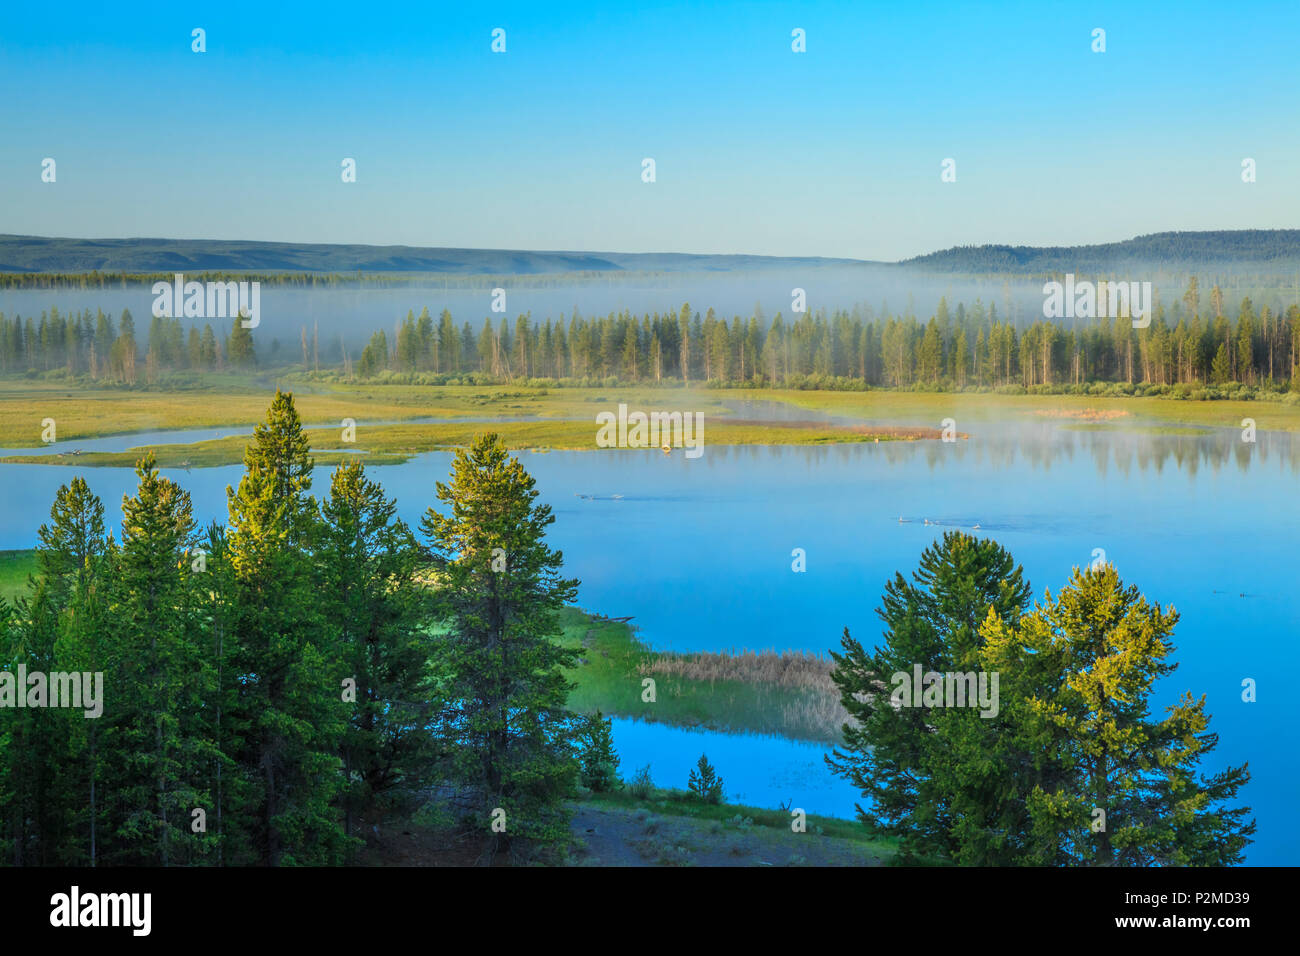 fog rising over the madison river flowing into the madison arm of hebgen lake near west yellowstone, montana - Stock Image